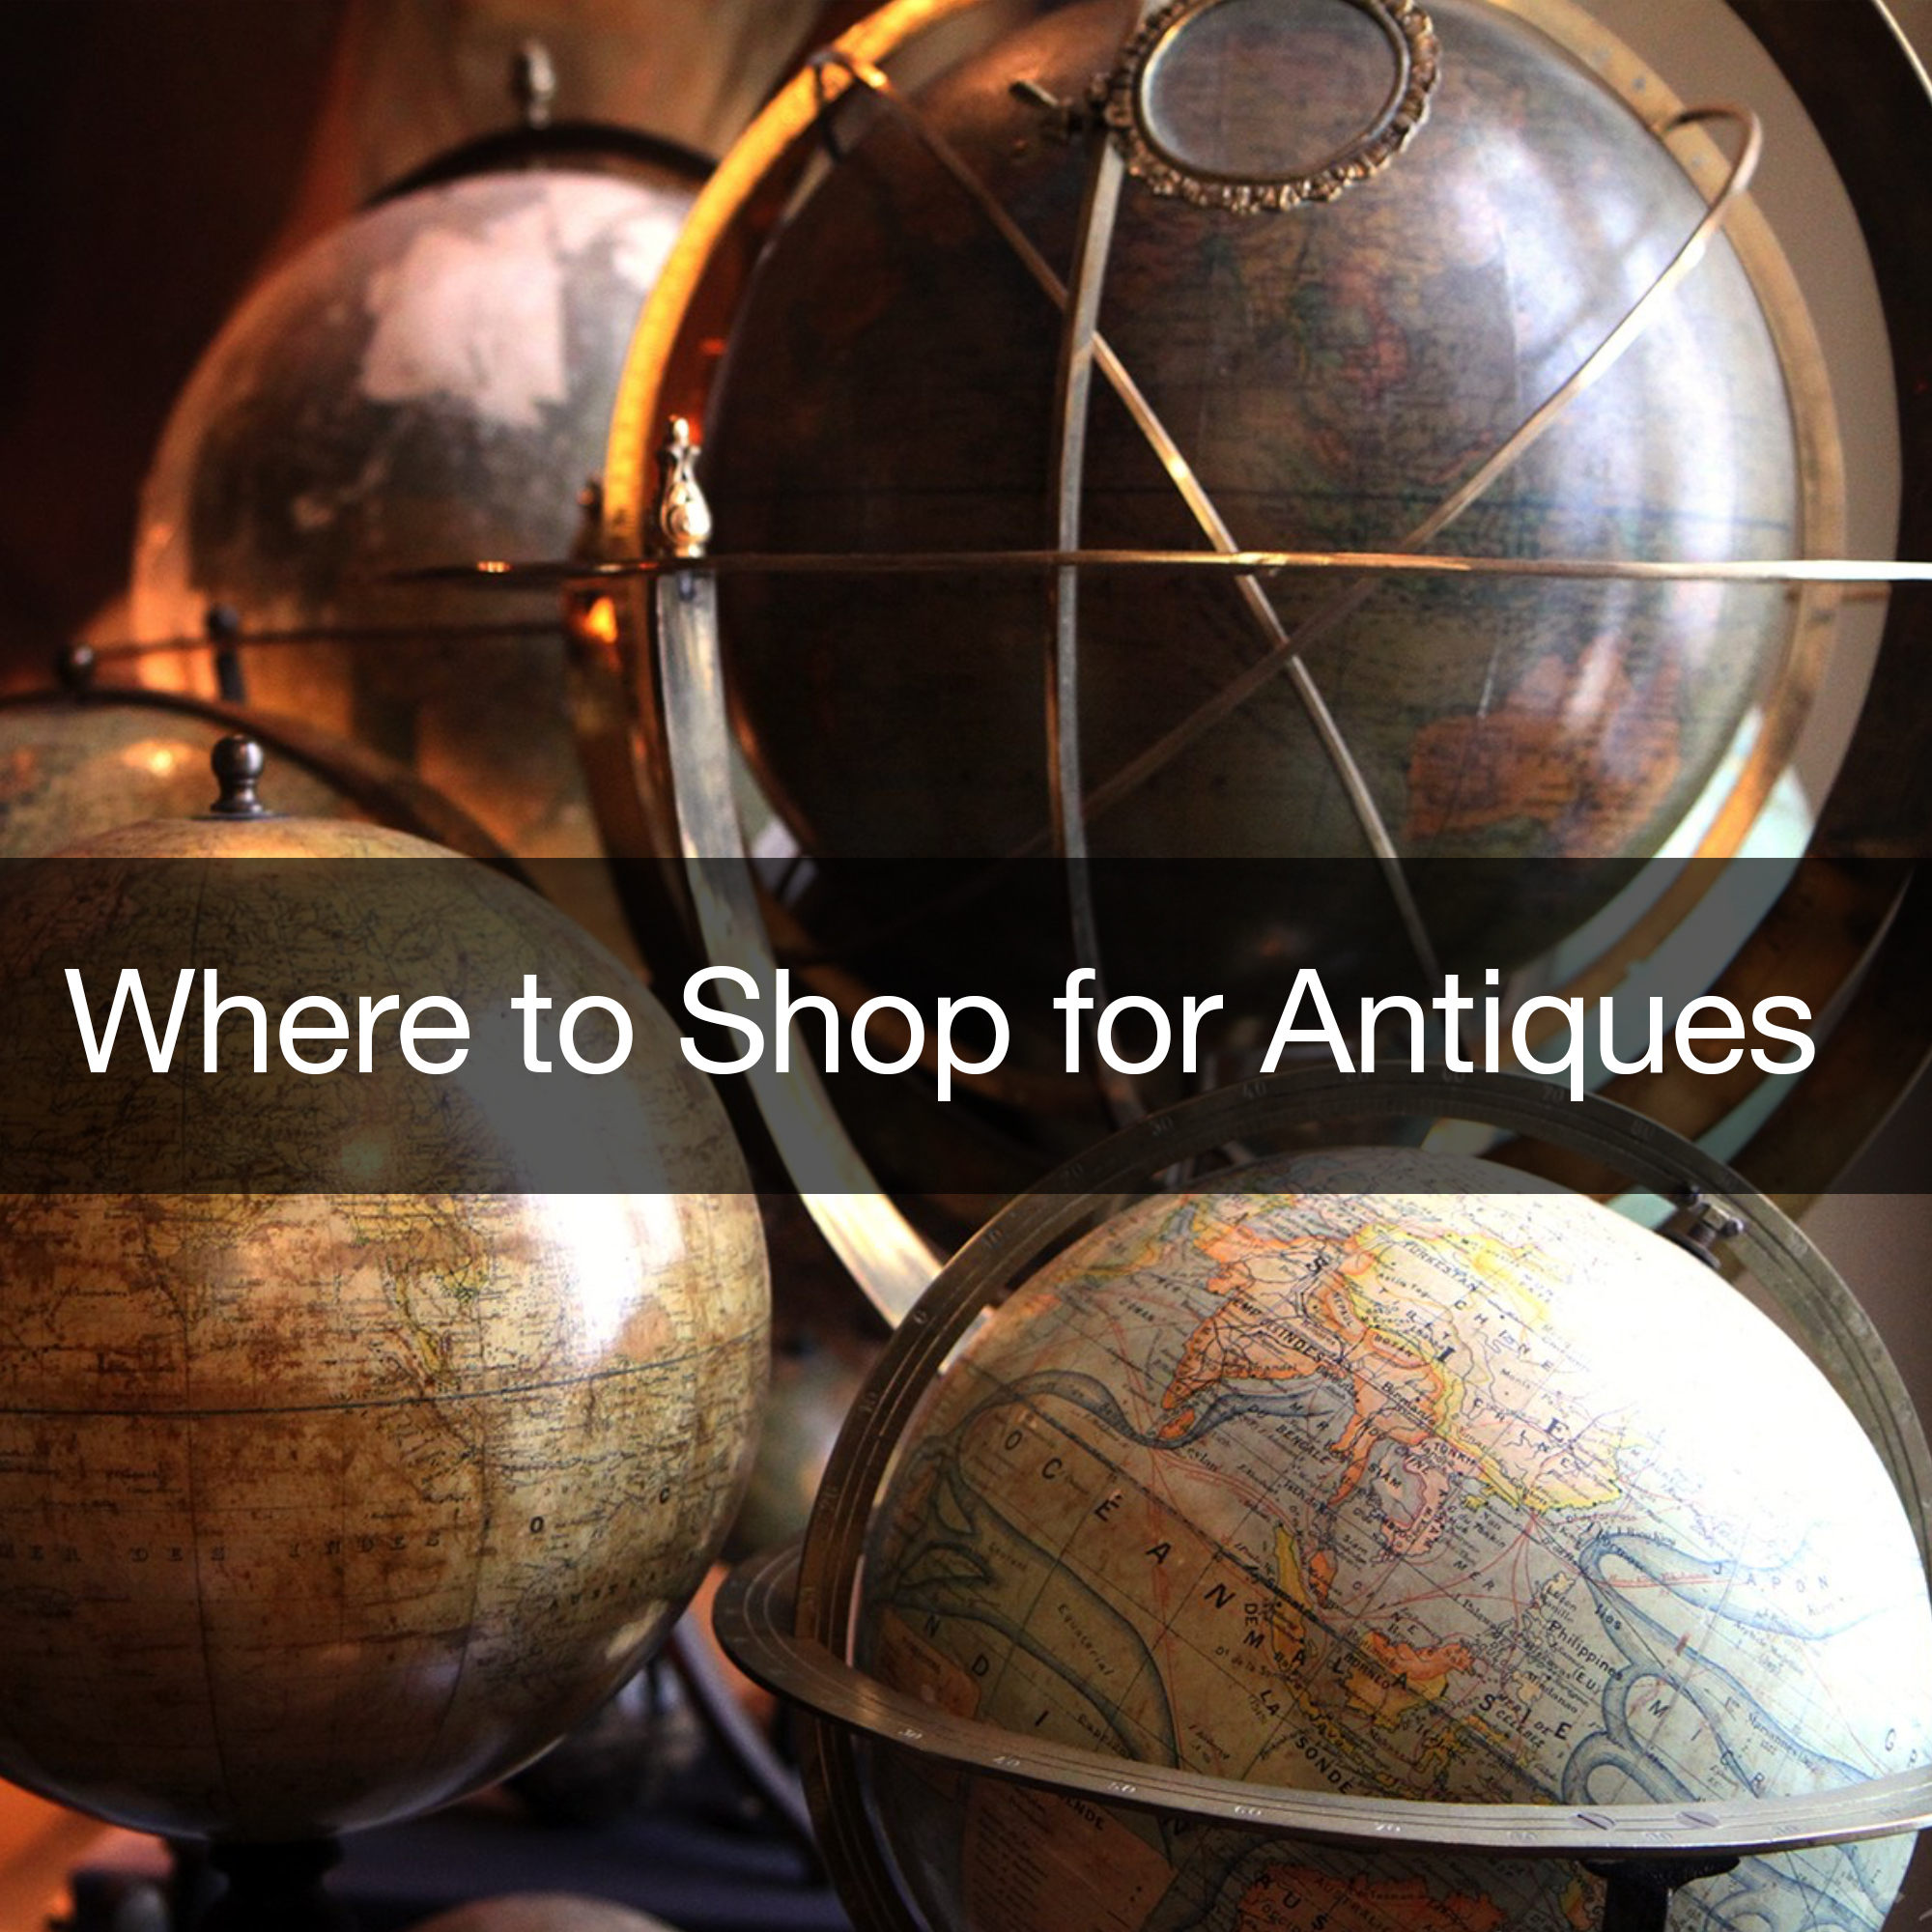 jason-b-graham-collaborations-OKL-where-to-shop-antiques-square